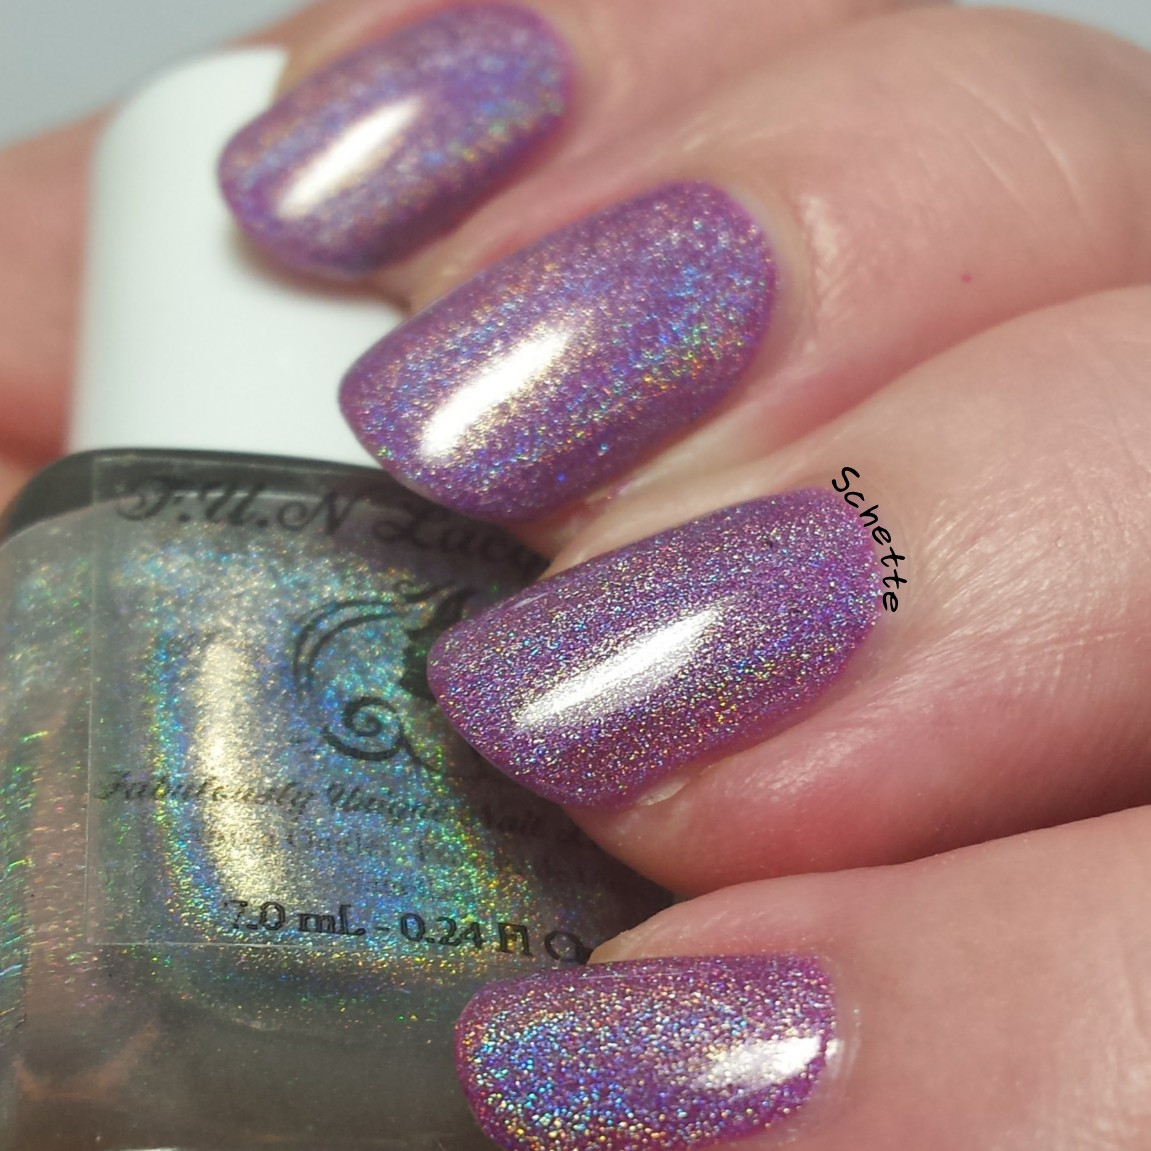 Fun Lacquer : Raspunzel, Snow white, Tiana, Diamond top coat